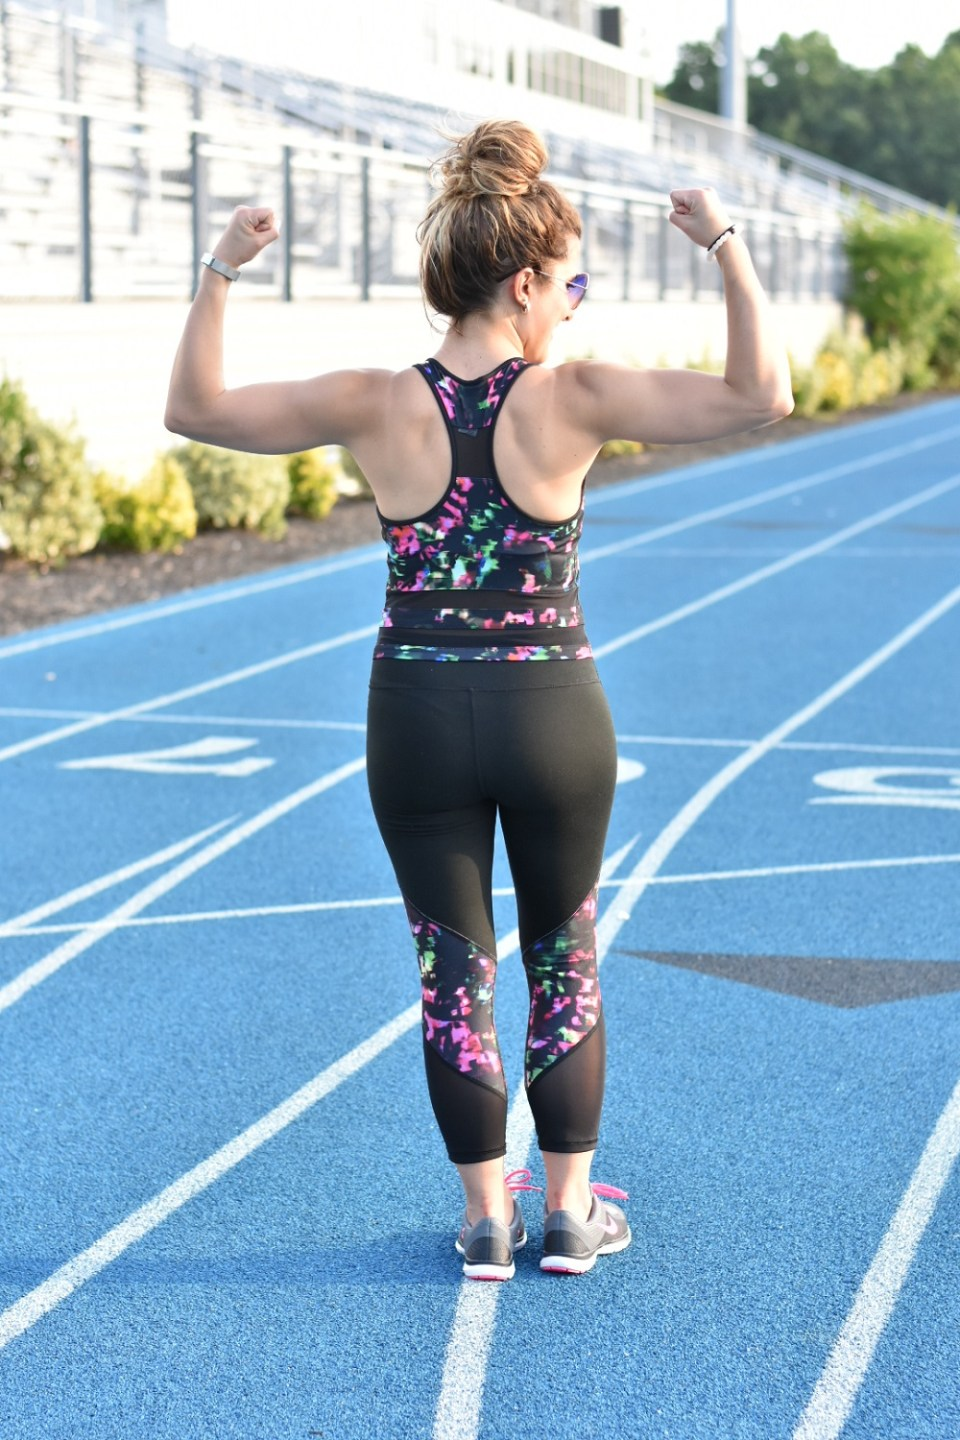 First Fitness Post – How to Stay Motivated